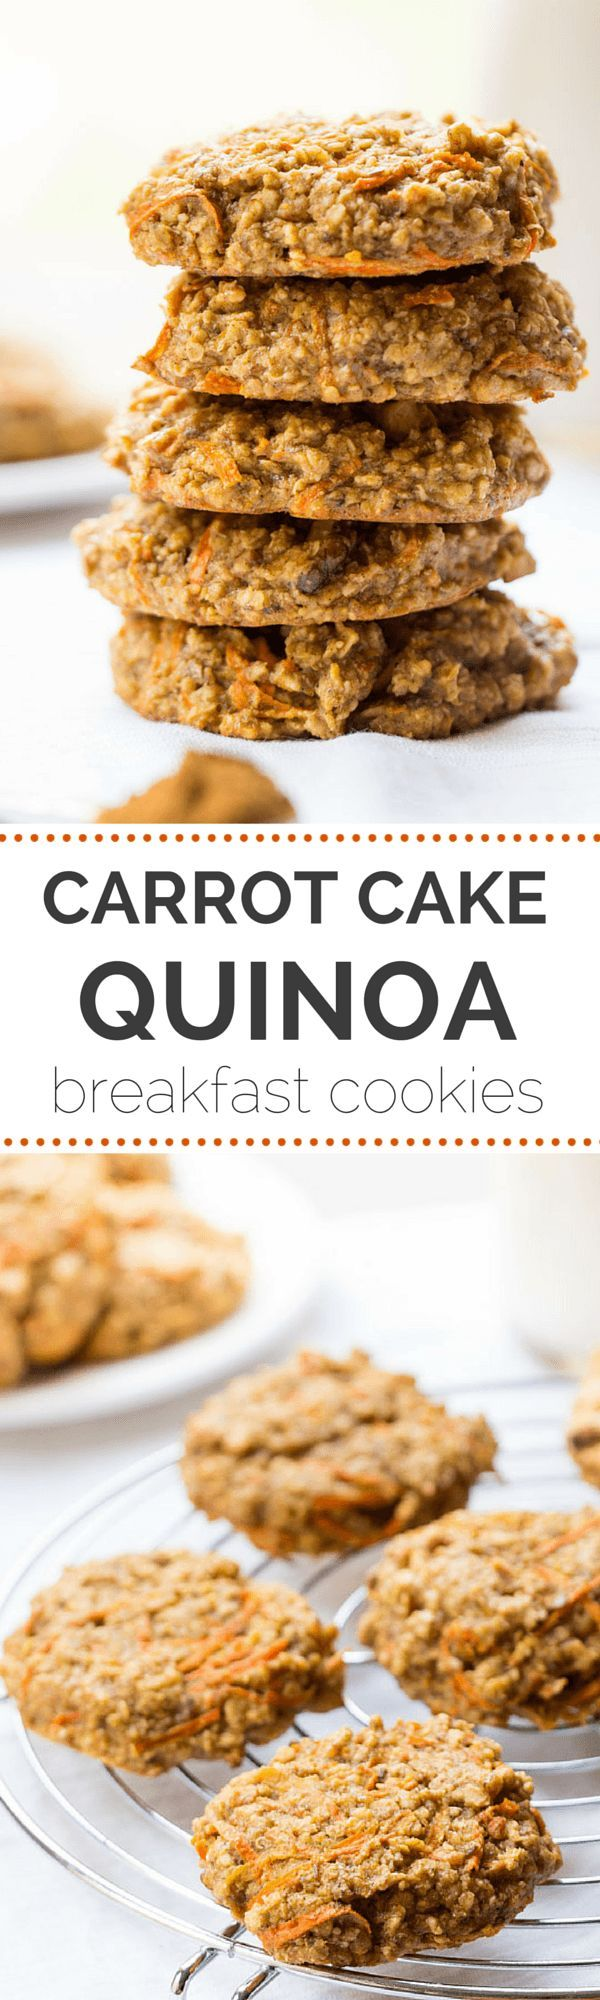 These AMAZING quinoa breakfast cookies taste just like carrot cake but are actually HEALTHY | gluten-free + vegan